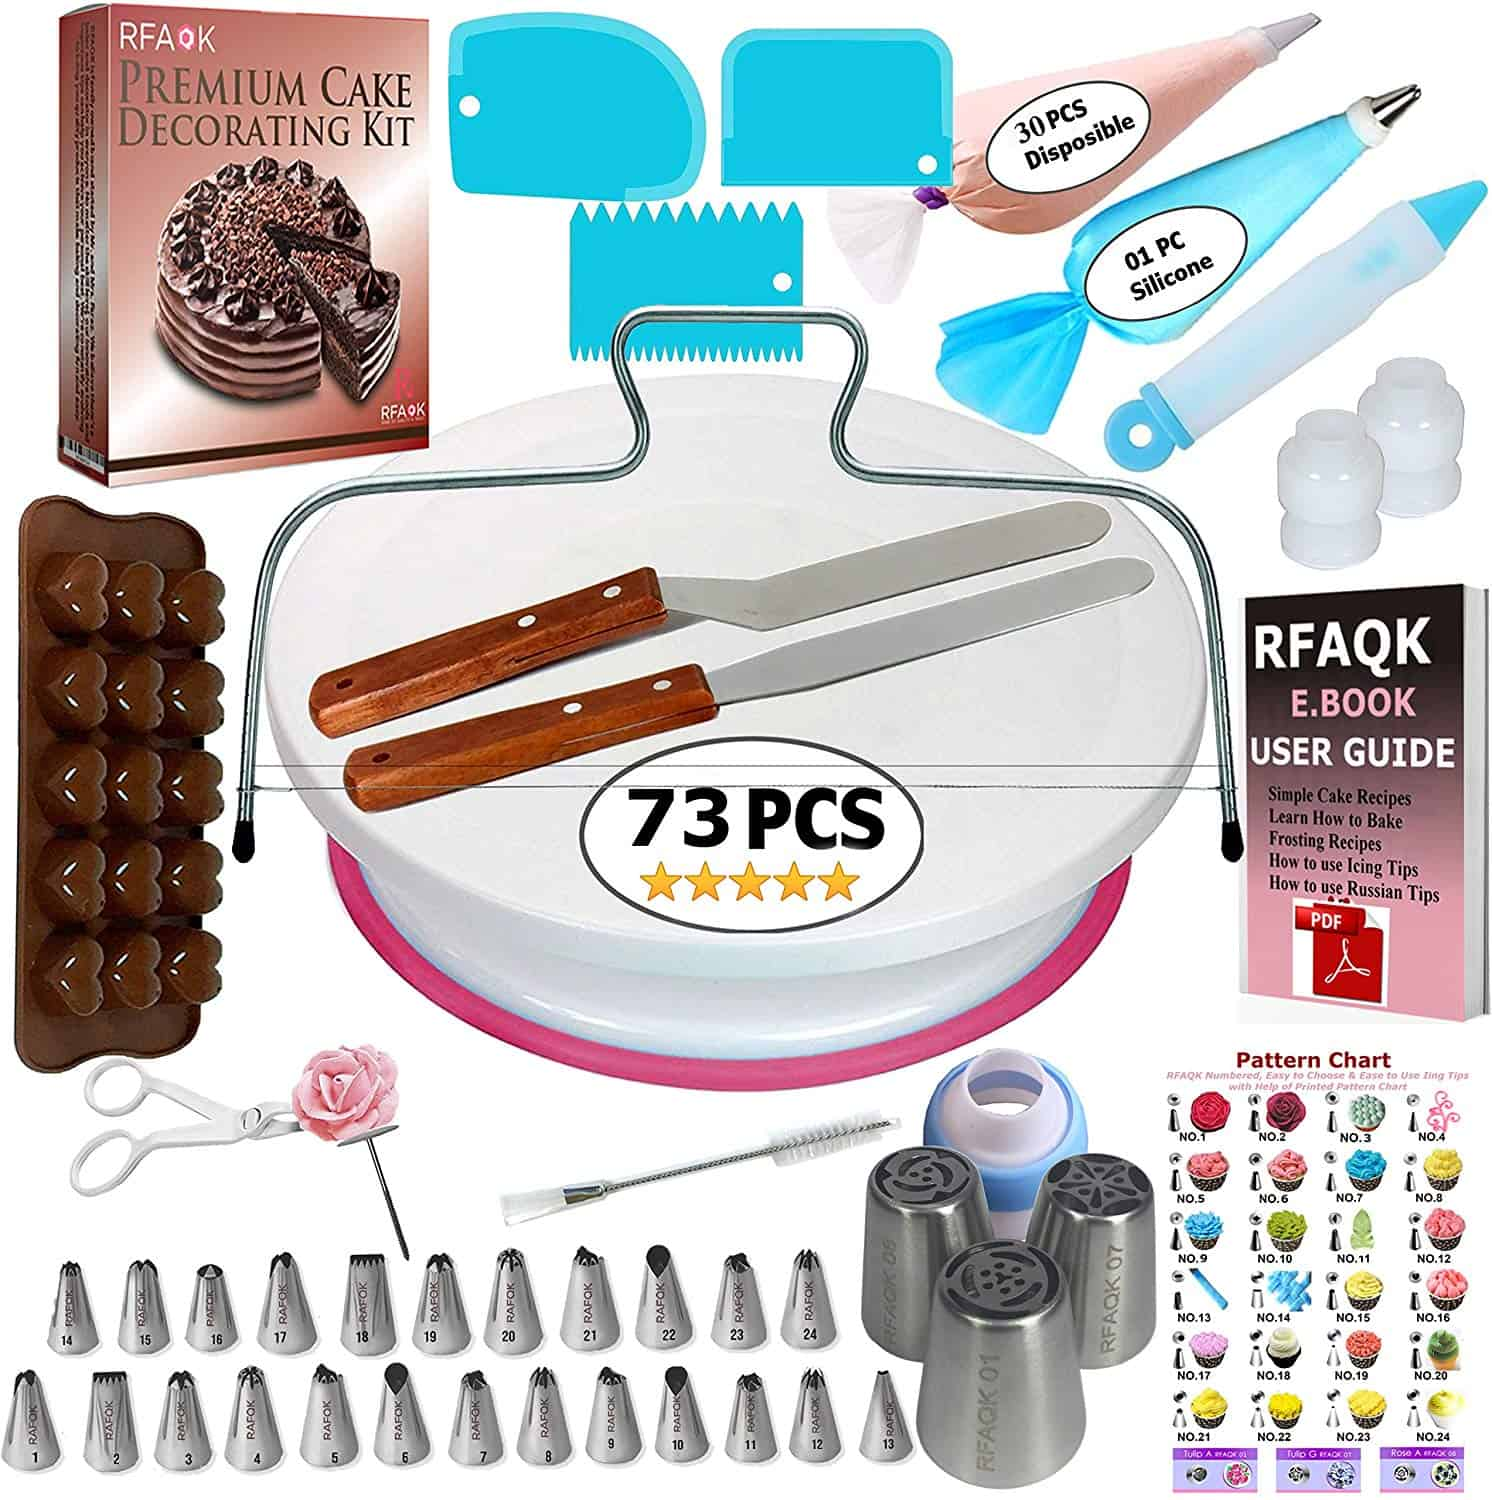 Rfaqk 73 piece decorating kit (for beginners)